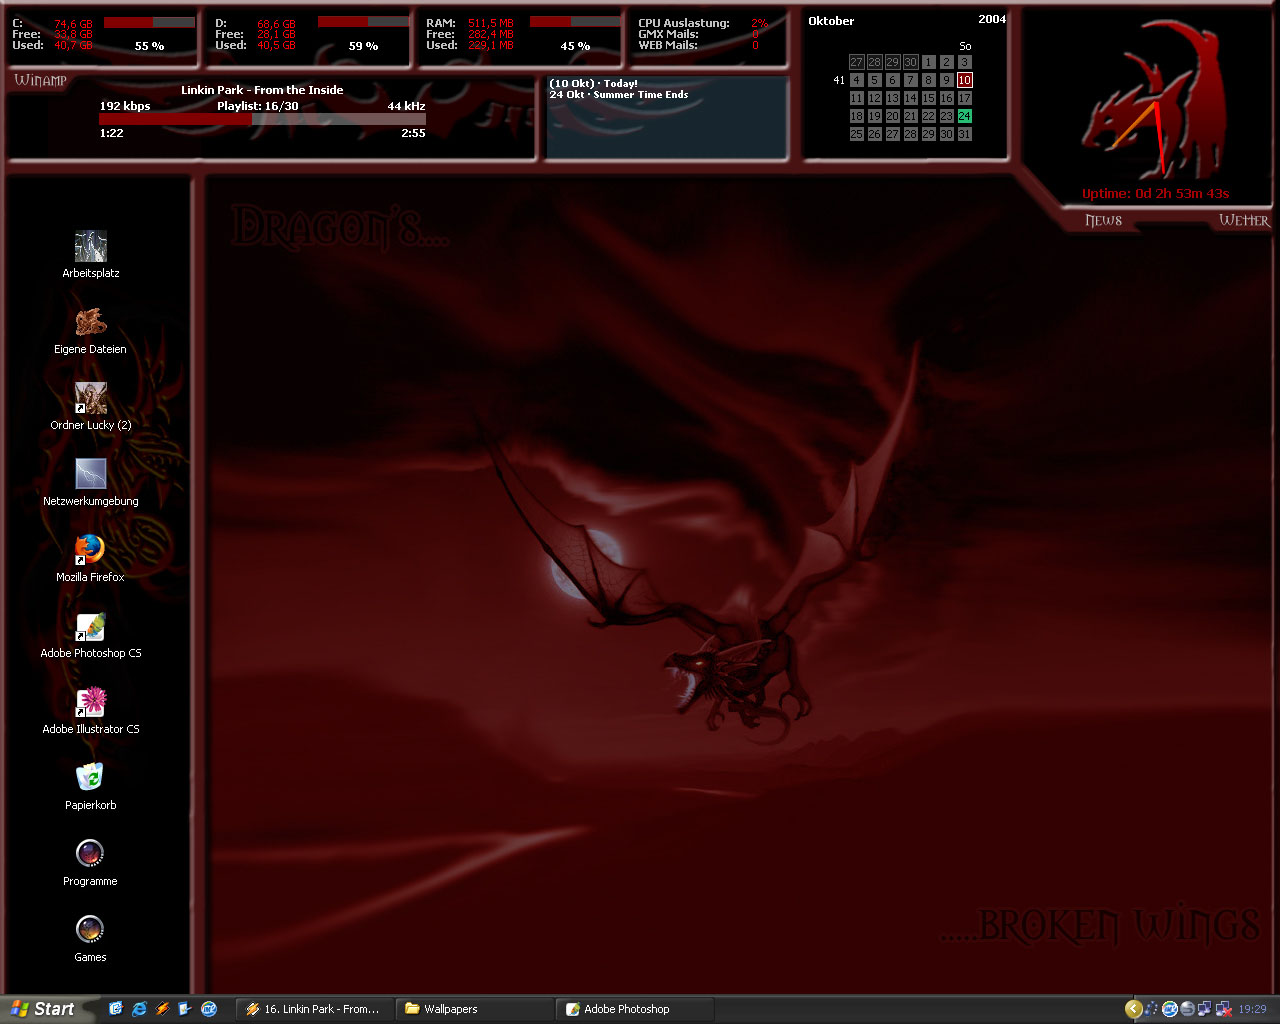 Title: Dragons Desktop 1280x1024